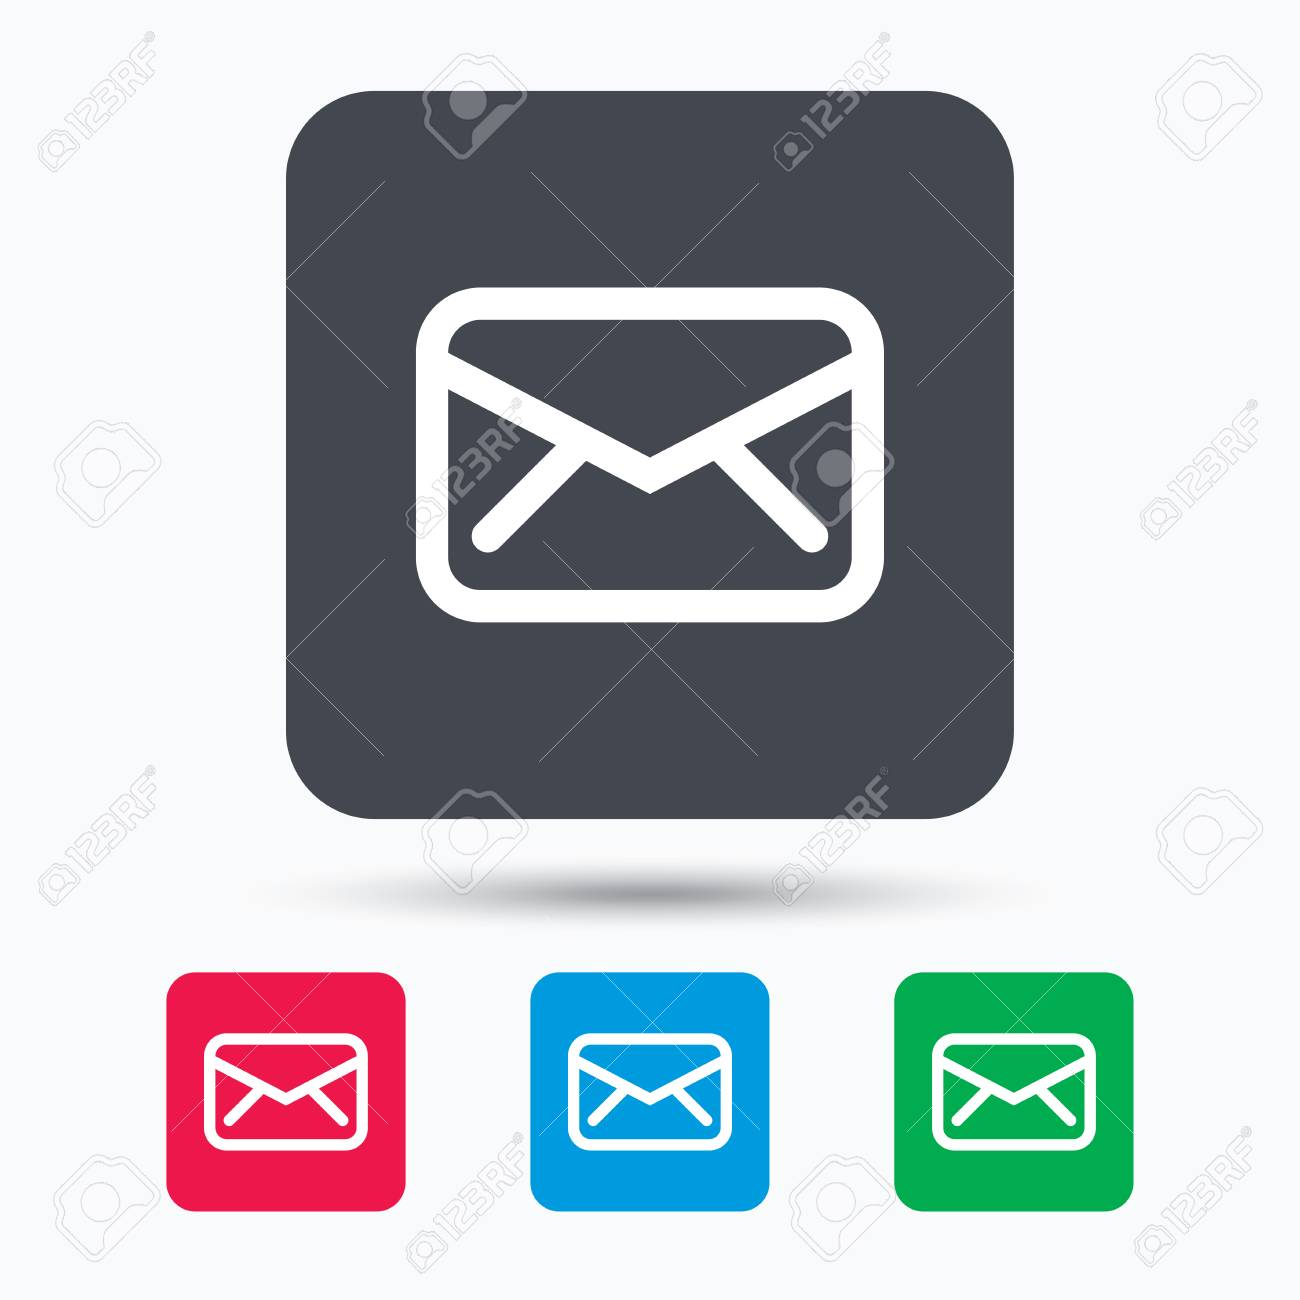 Send email message sign. Internet mailing symbol. Colored square buttons  with